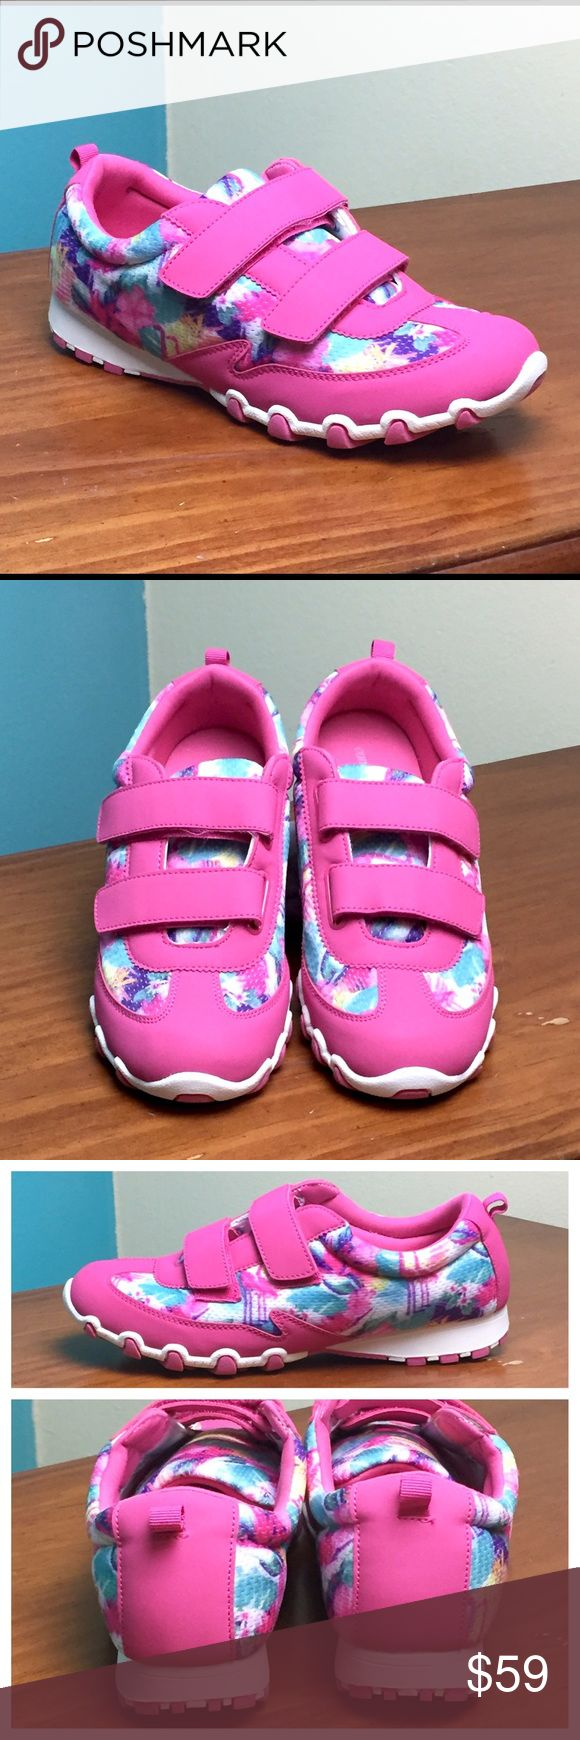 COMFORTVIEW Pink Floral Memory Foam Sneakers 11M Super cute pink floral Laken tennis shoes with Velcro closure. These sneakers have a breathable fabric upper and skid-resistant rubber outsole. Memory foam insole for comfort. Size 11M. New without Box! Comfortview Shoes Sneakers